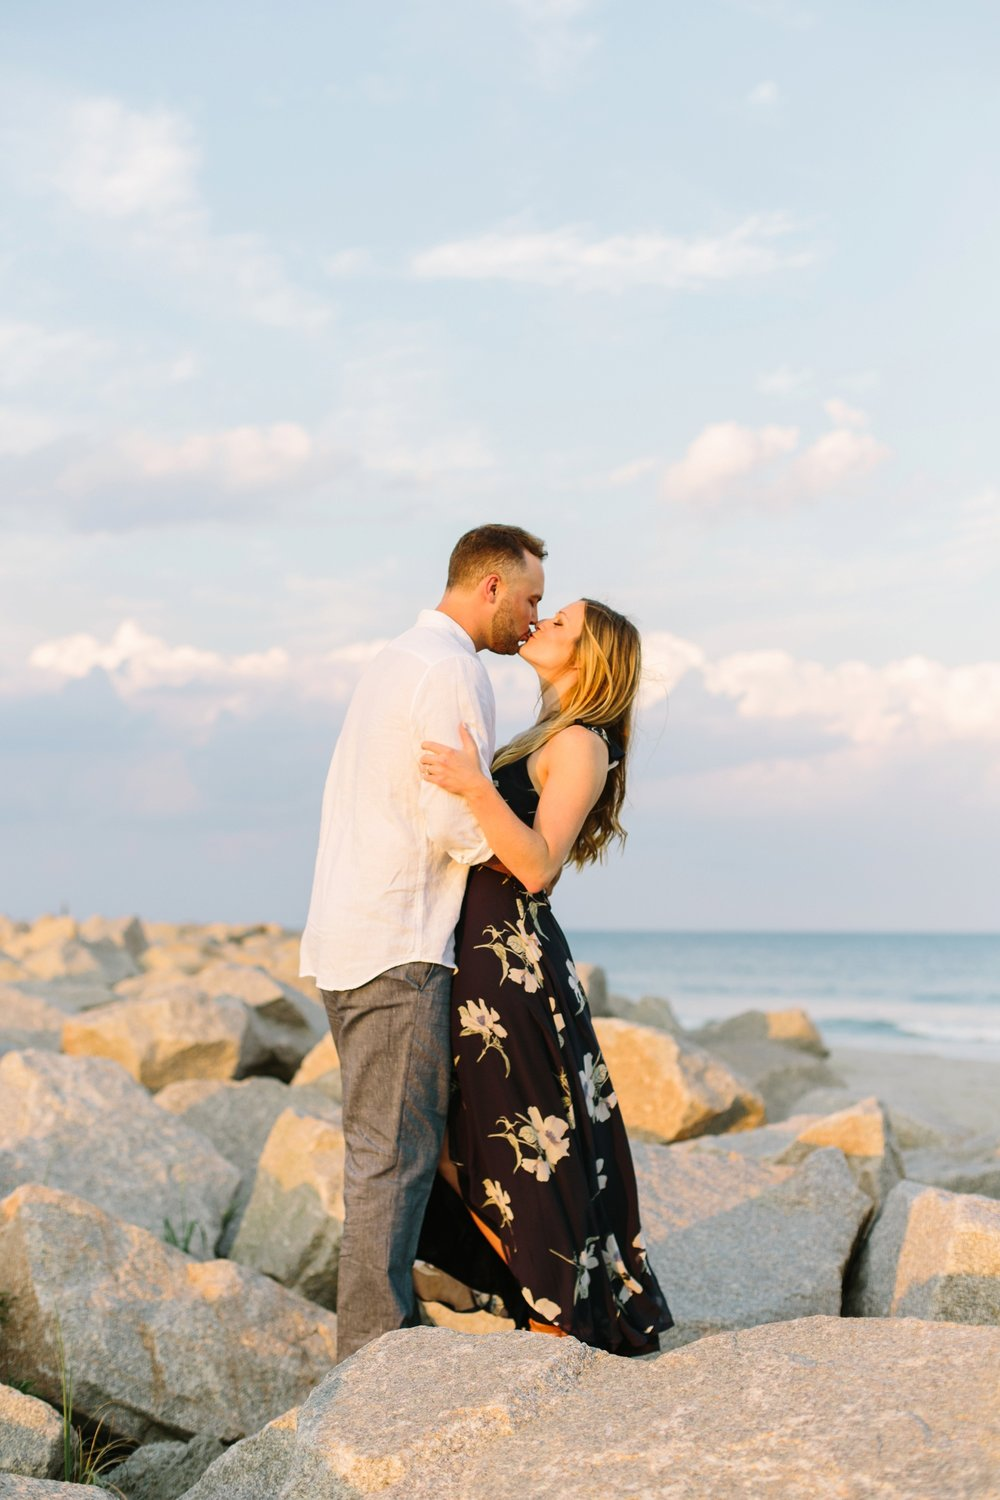 Fort-Fisher-engagement-session-beach-wilmington-north-carolina-lindseyamillerphotography_0014.jpg